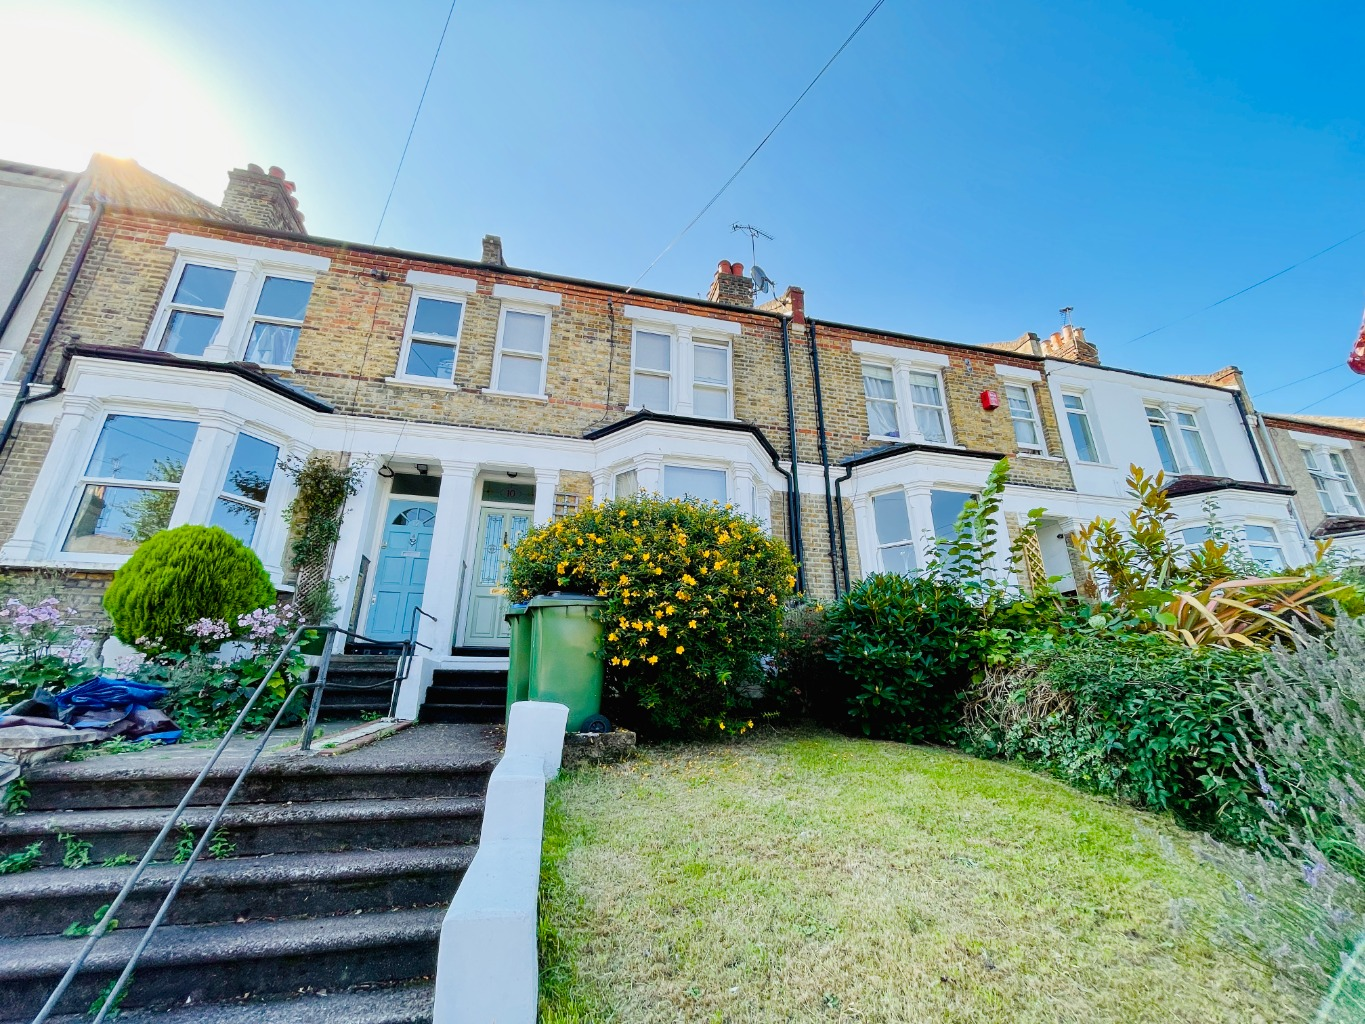 3 bed terraced house for sale in Nithdale Road, London - Property Image 1